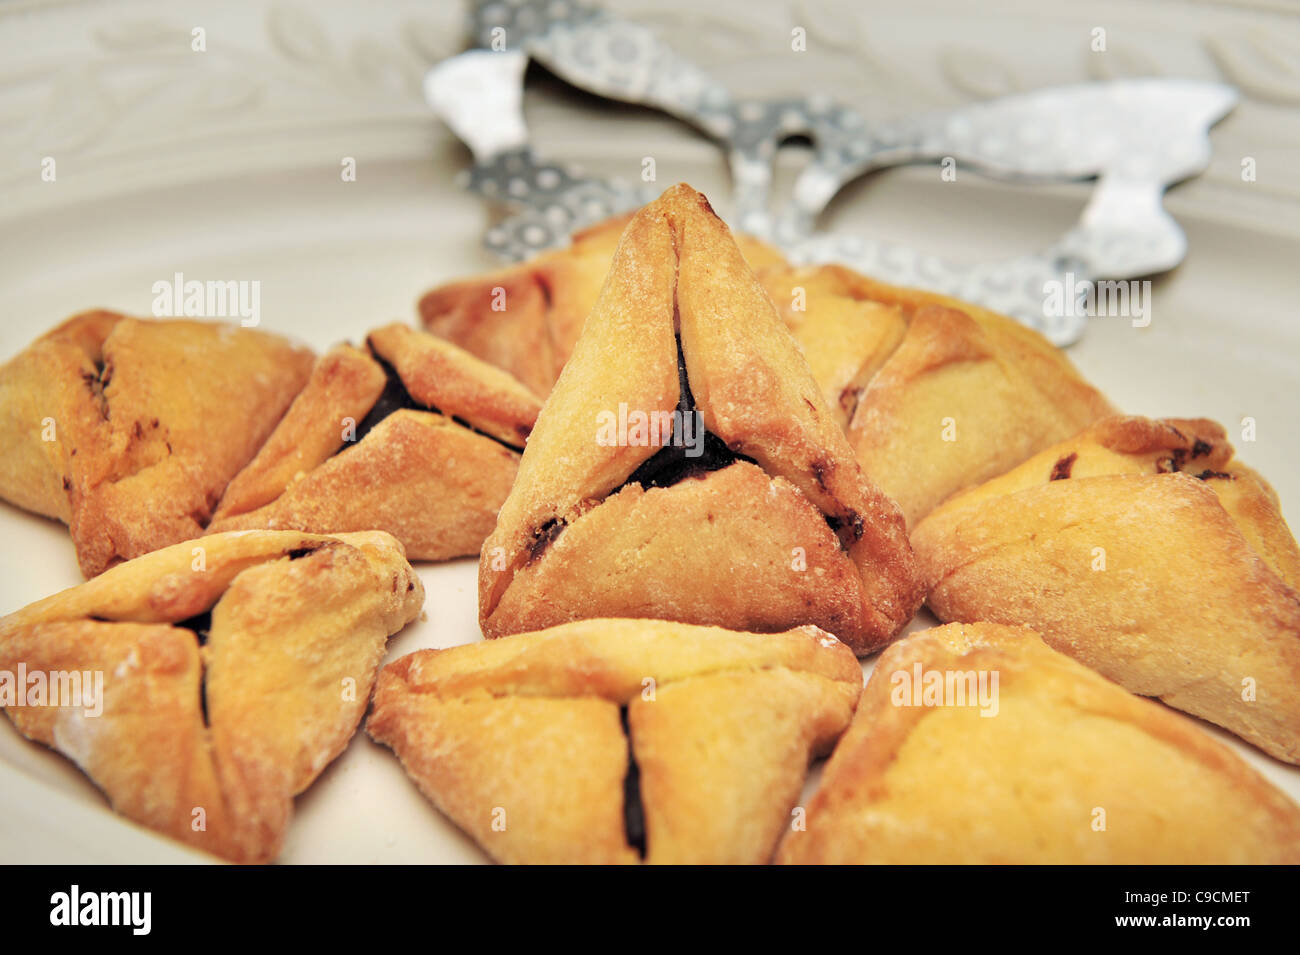 A hamantash is a pastry in Ashkenazi Jewish cuisine, traditionally eaten during the Jewish holiday of Purim. - Stock Image